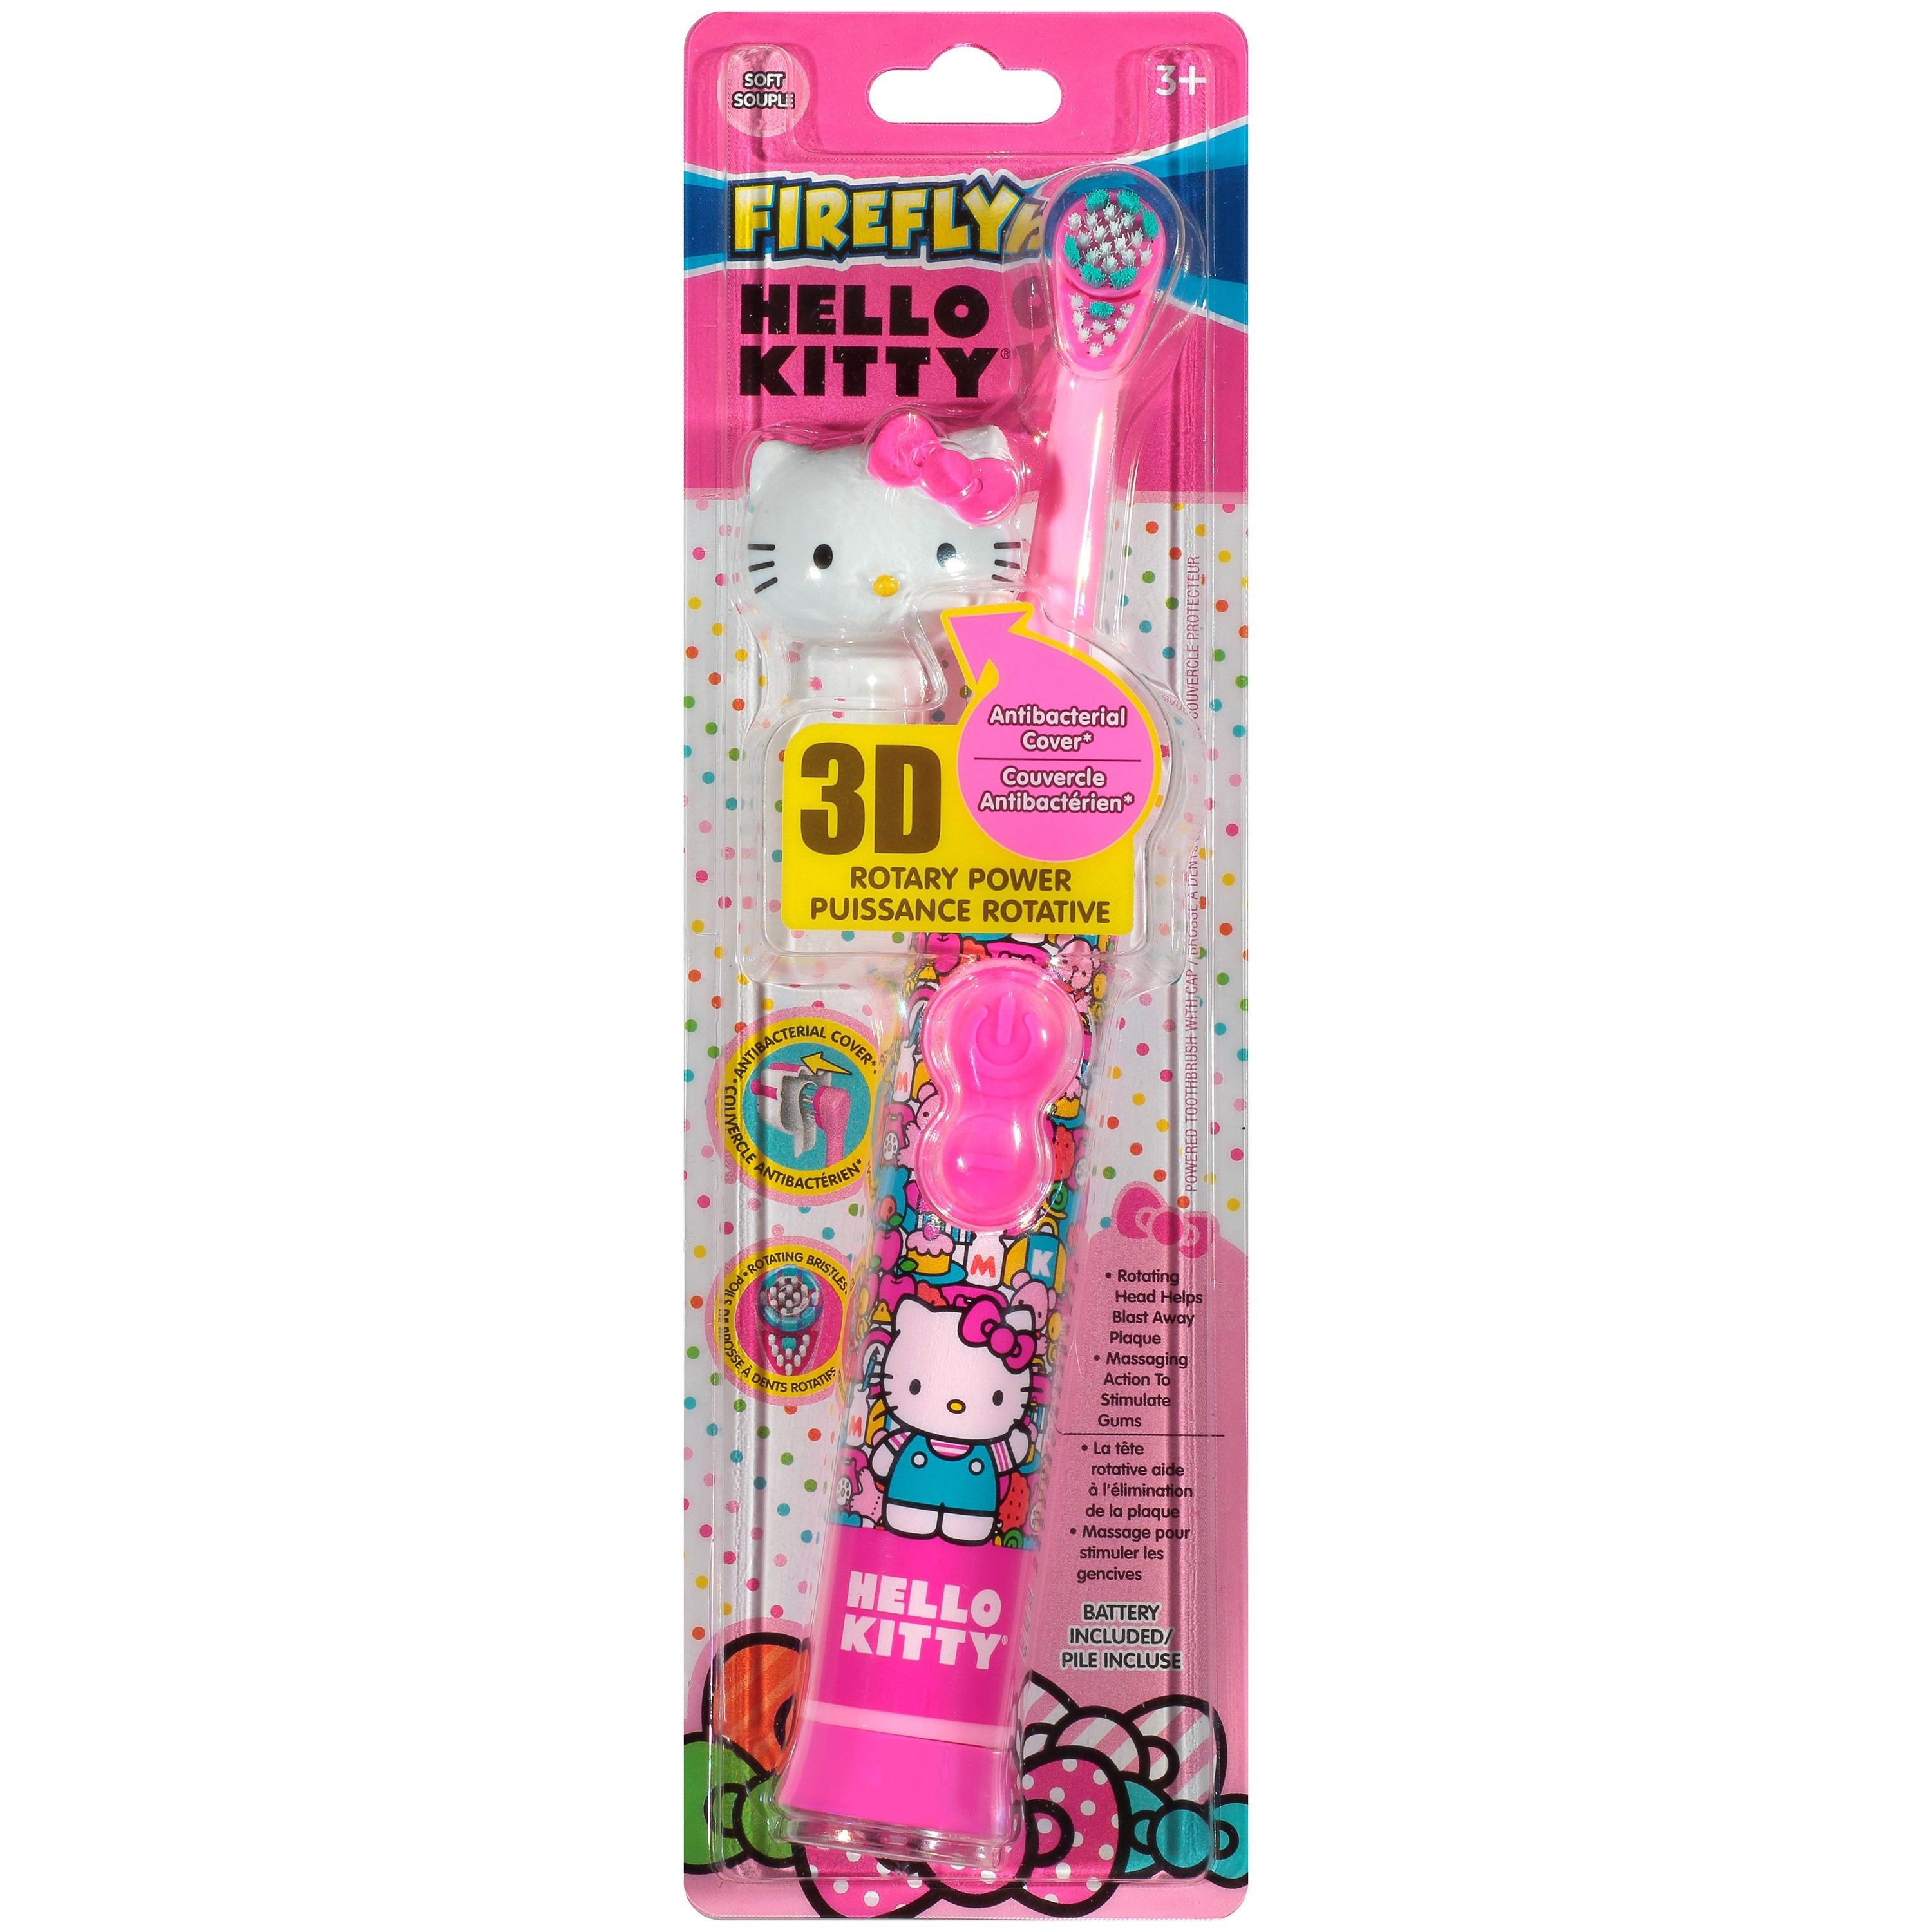 Firefly® Hello Kitty Rotary Power Soft Toothbrush